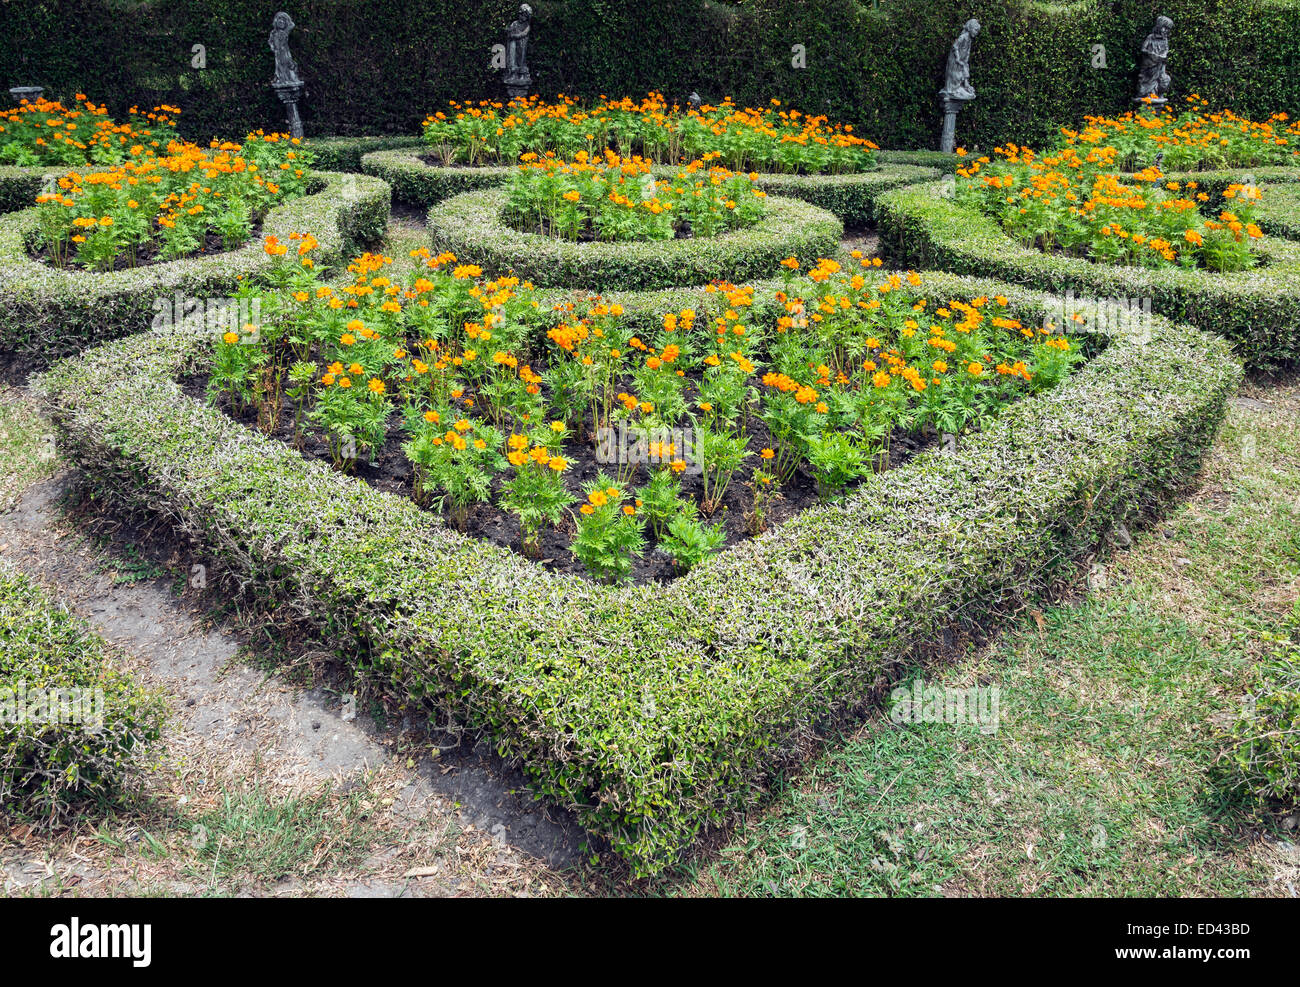 Landscaping And Hedges Stock Photos & Landscaping And Hedges Stock on